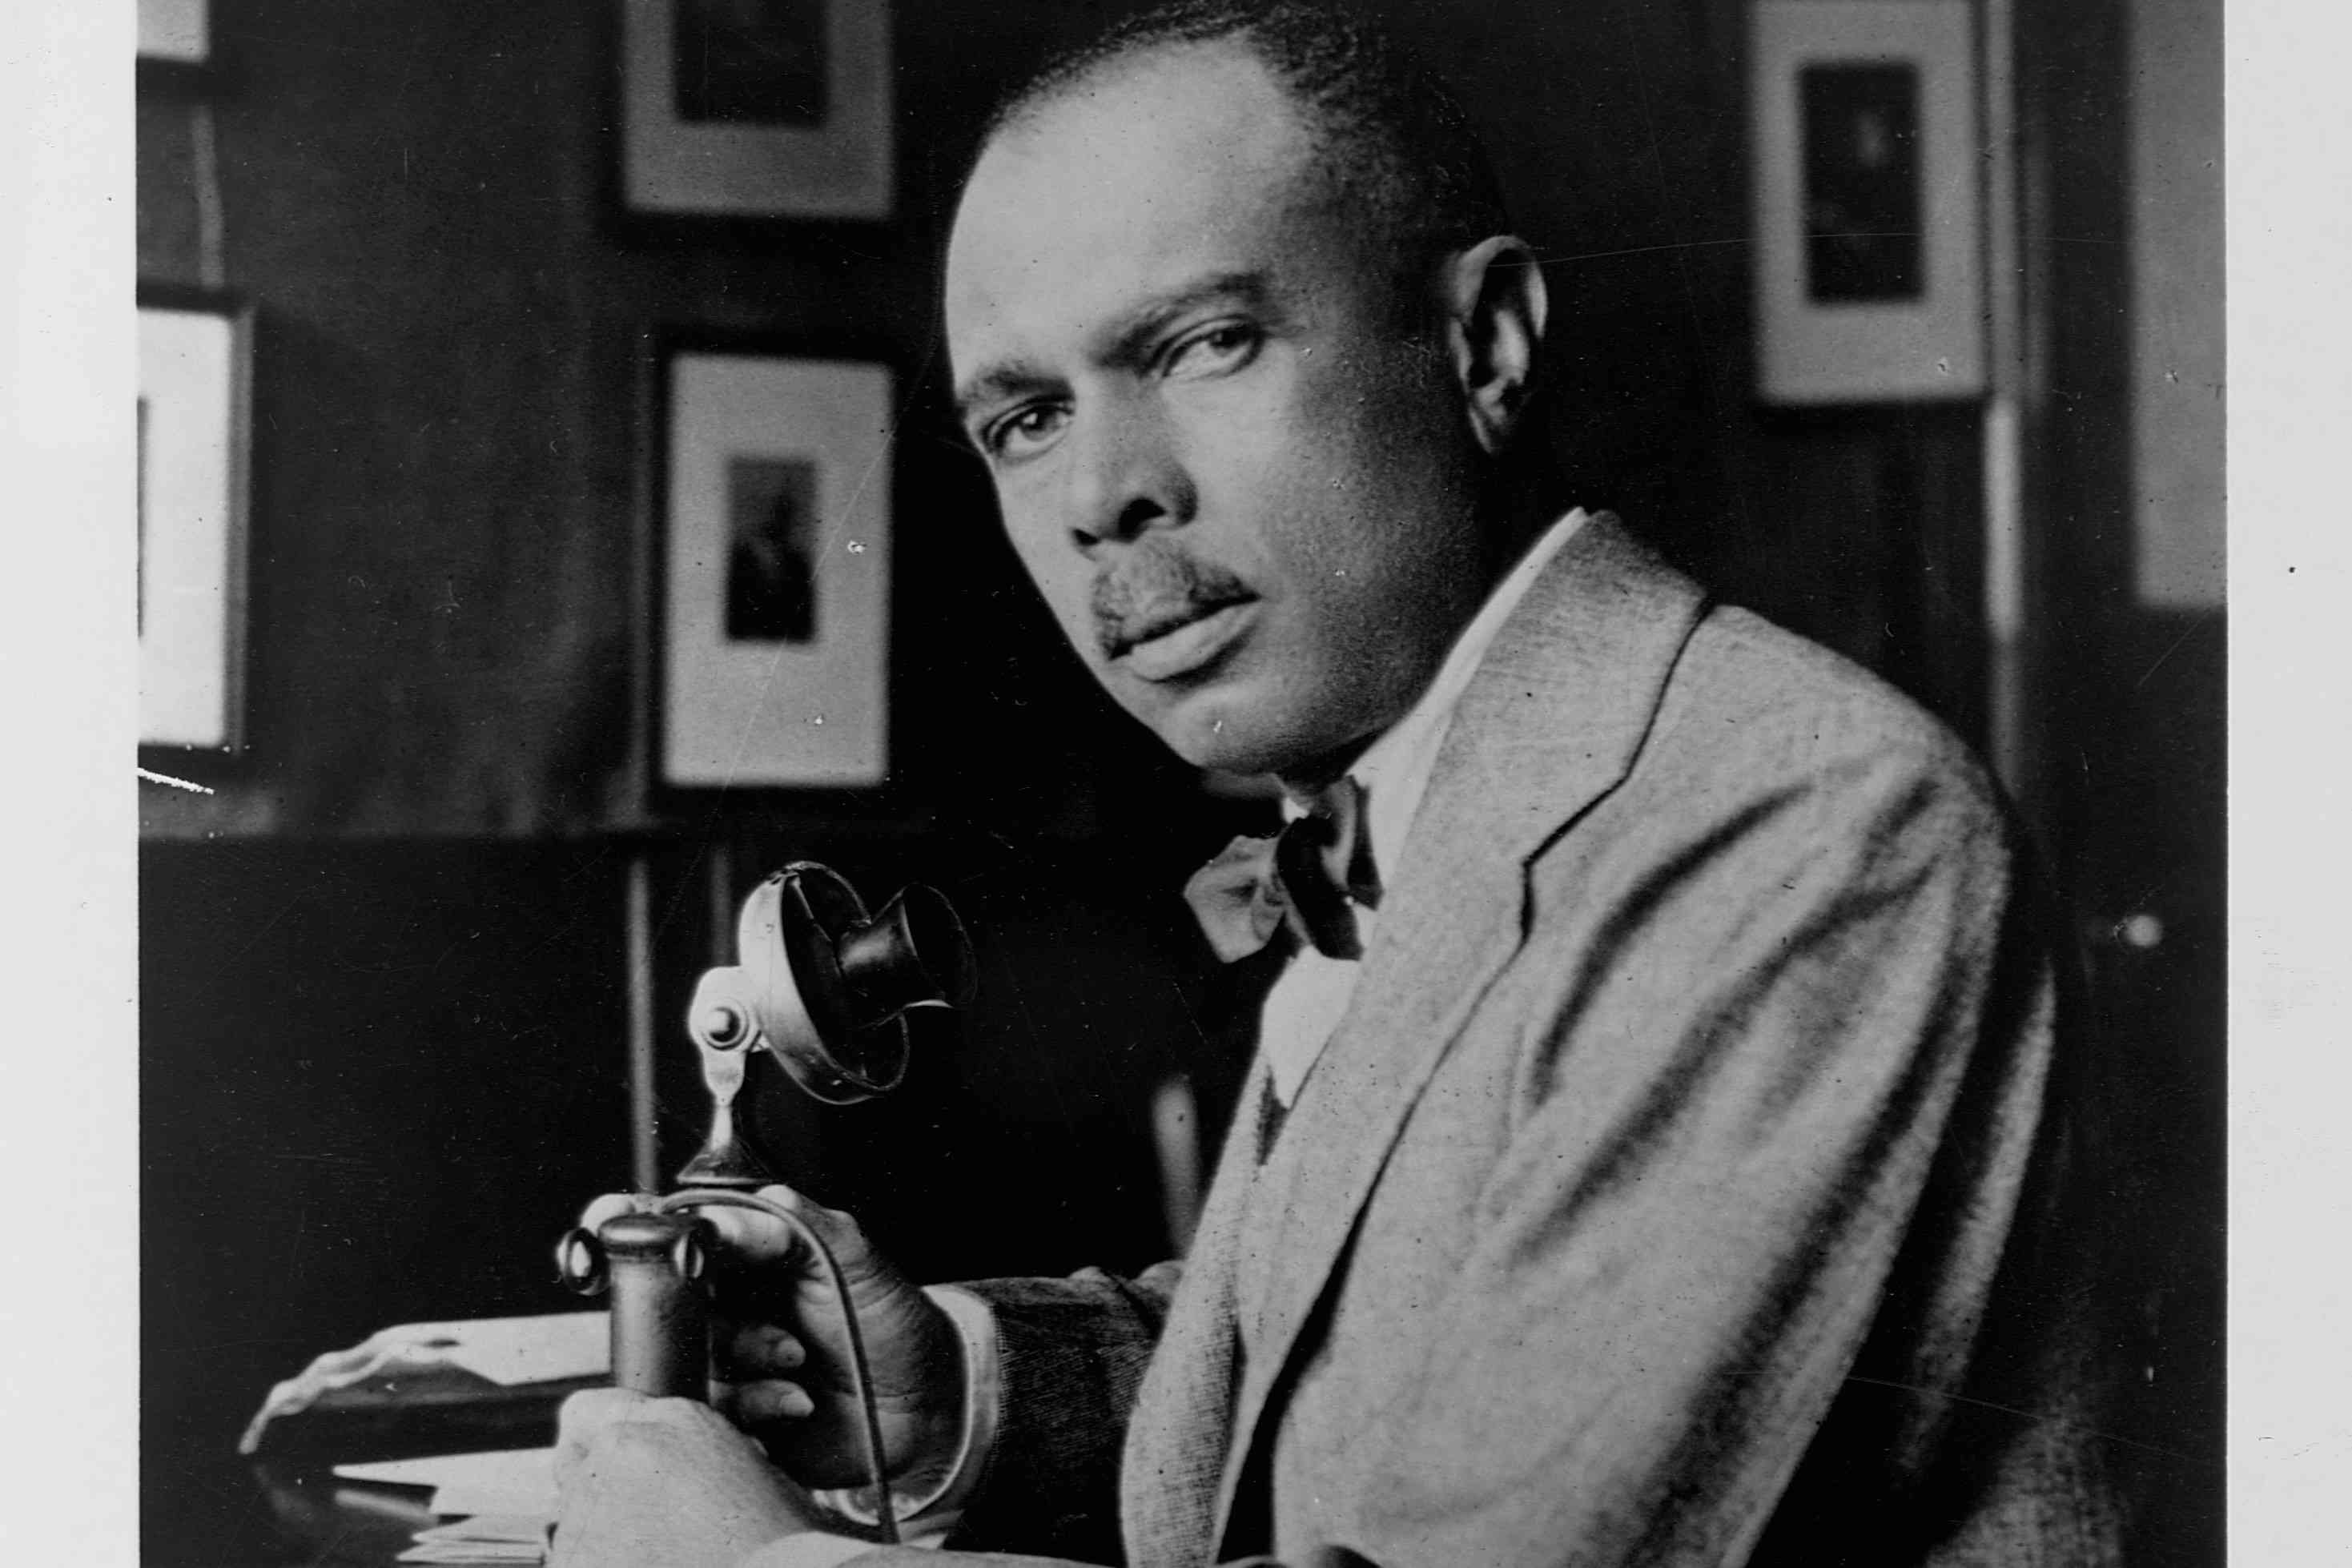 James Weldon Johnson holding a telephone from the early 1900s